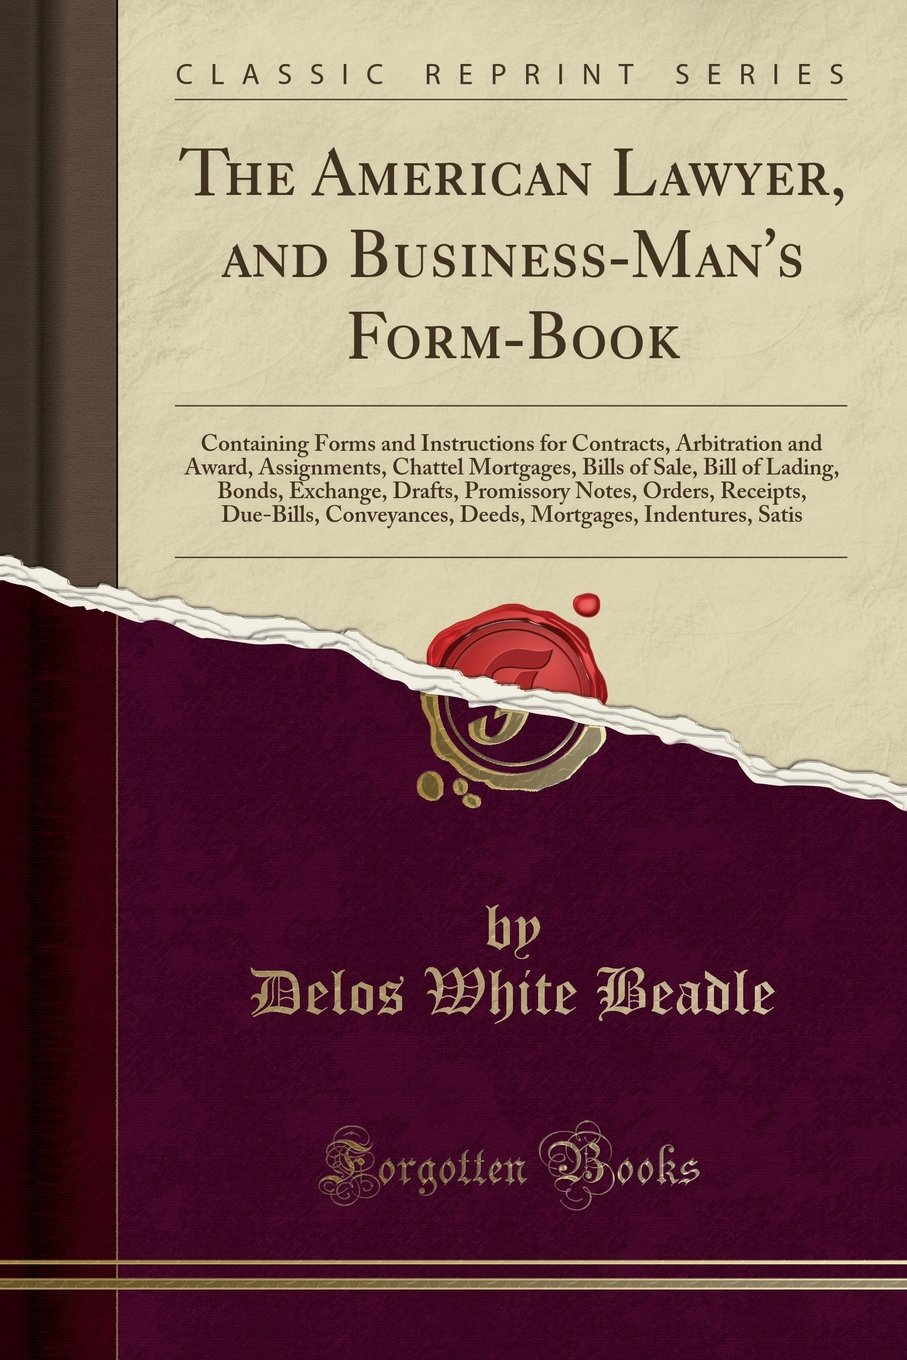 amazon the american lawyer and business man s form book